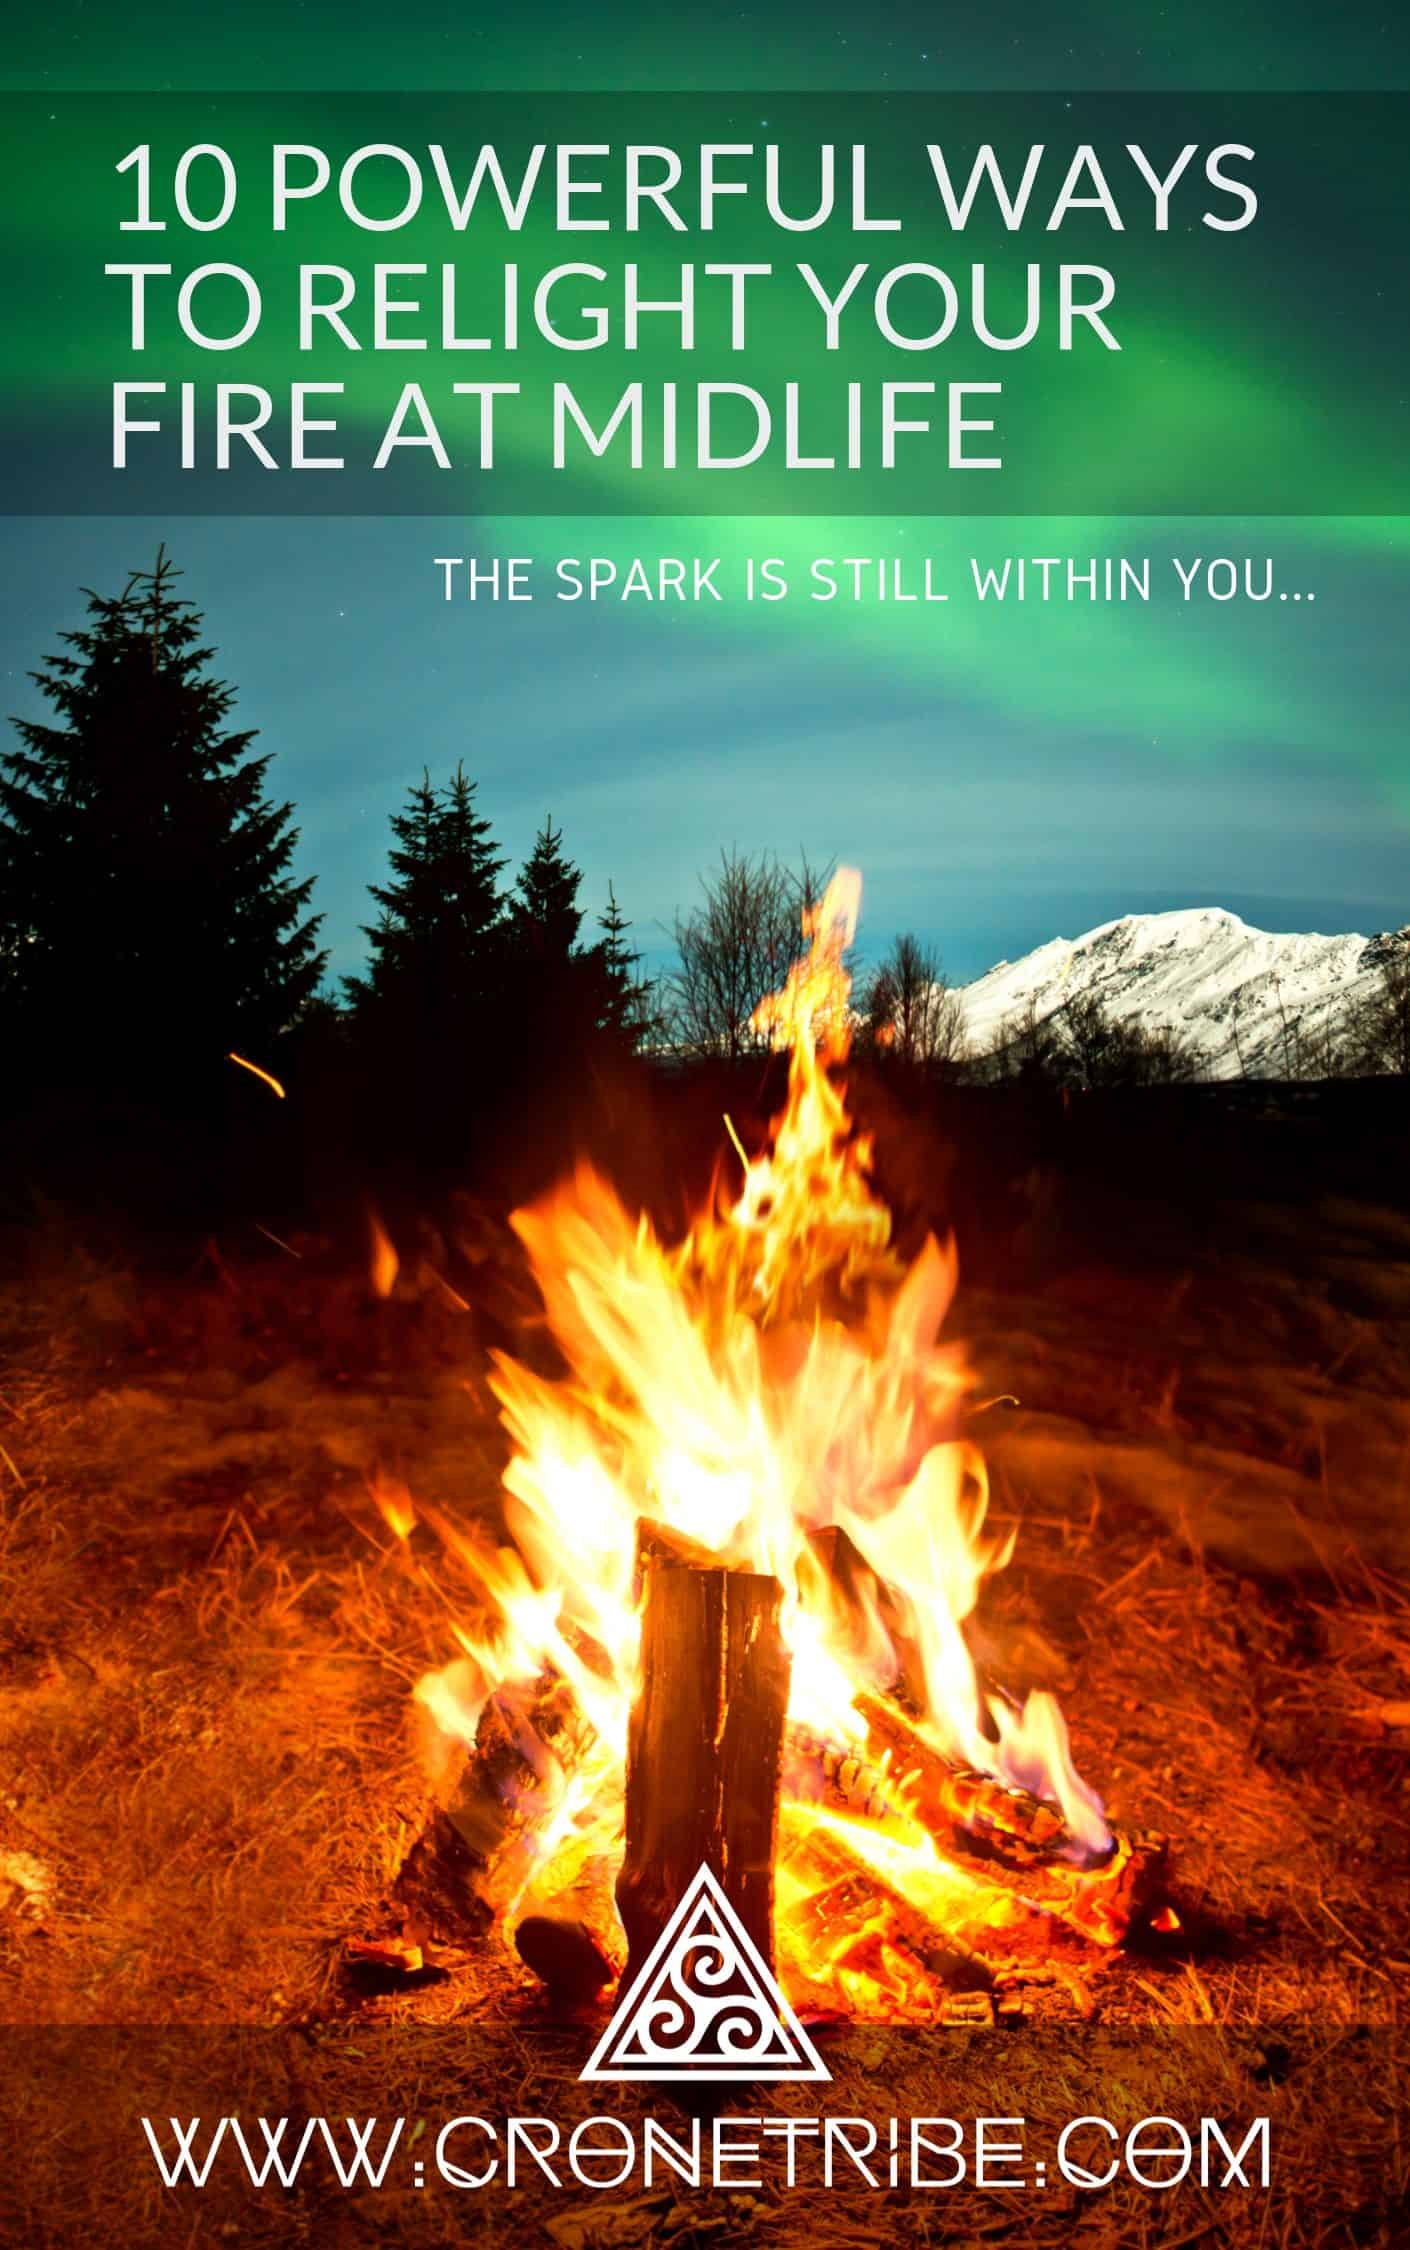 Relight Your Fire At Midlife